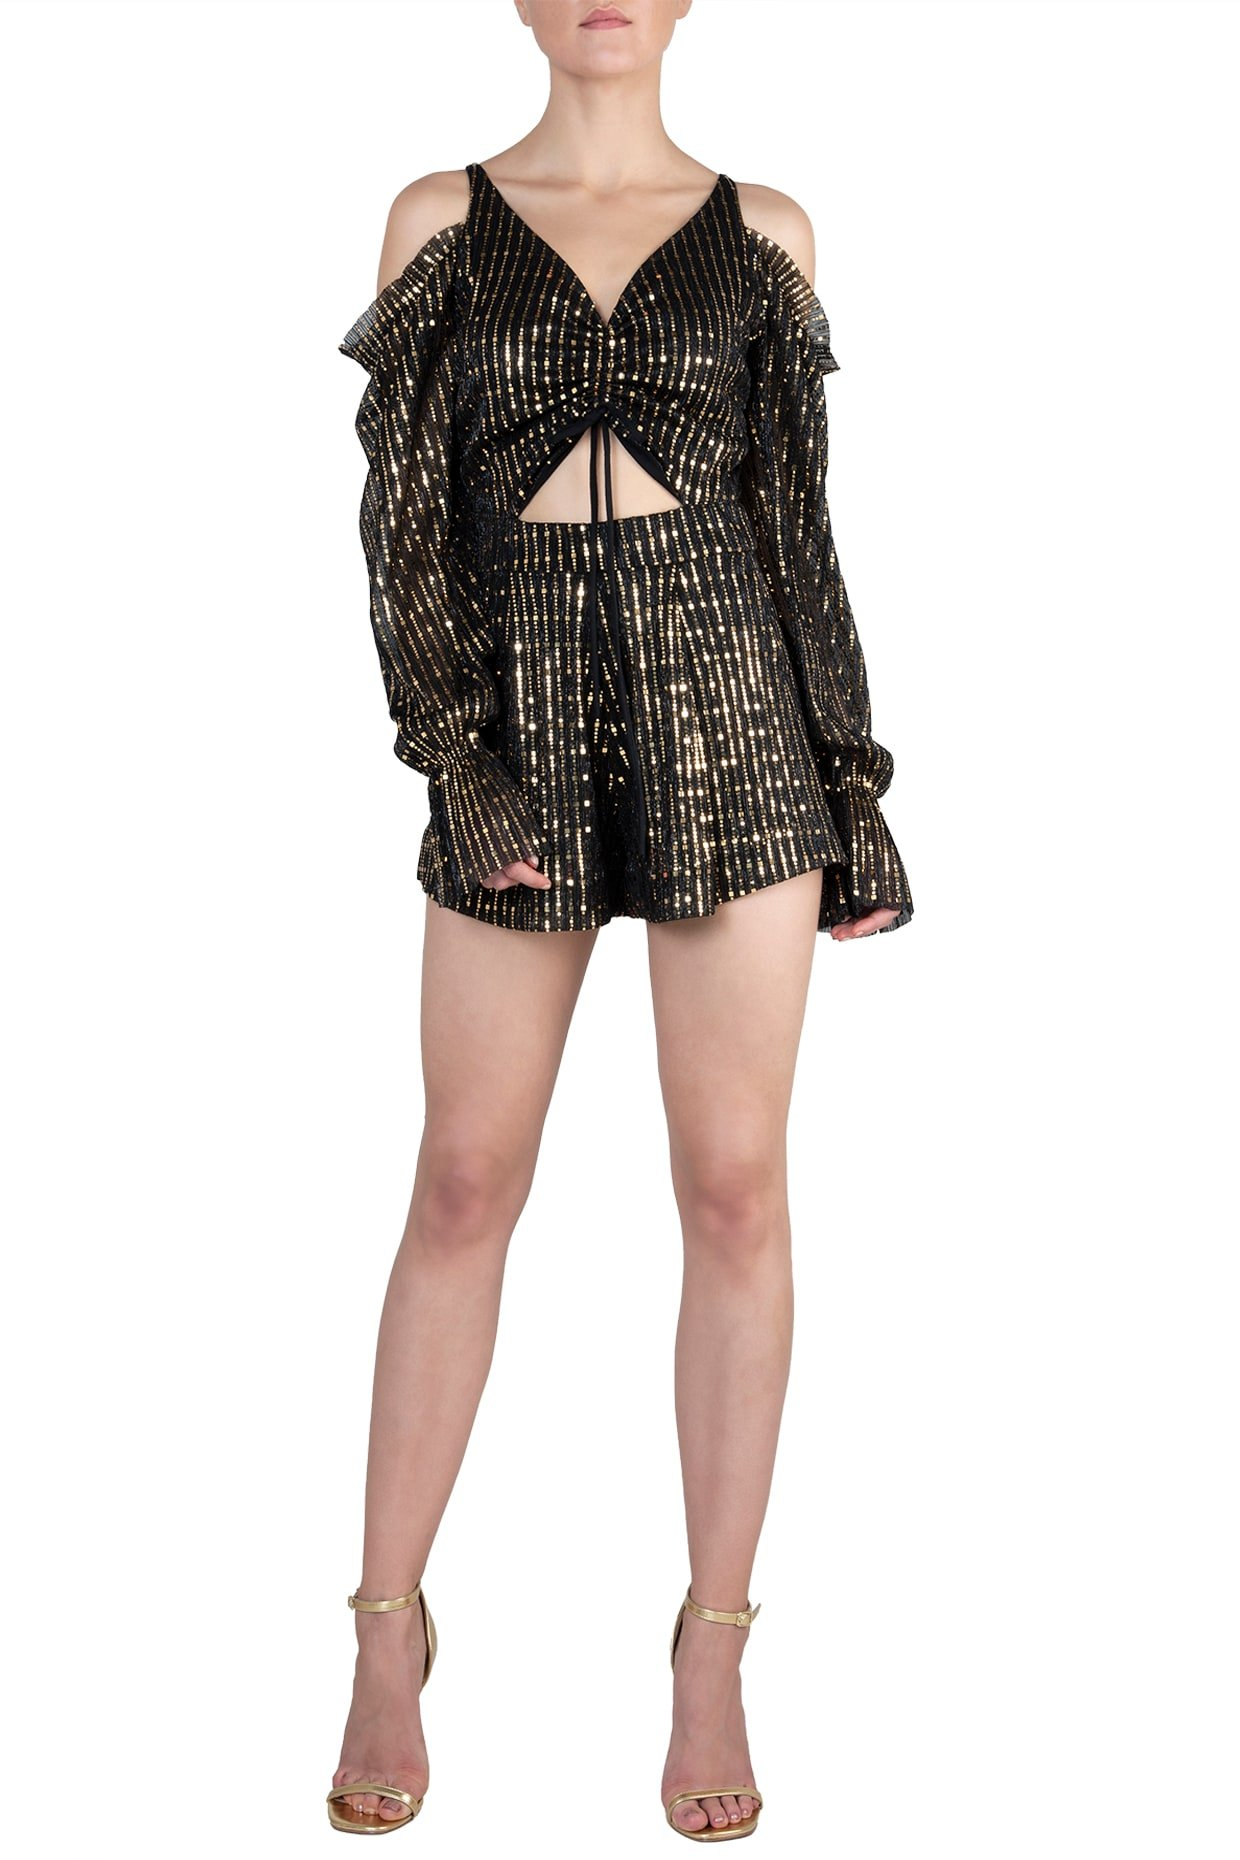 Black Metallic Cutout Playsuit by RS by Rippi Sethi-Handpicked for You